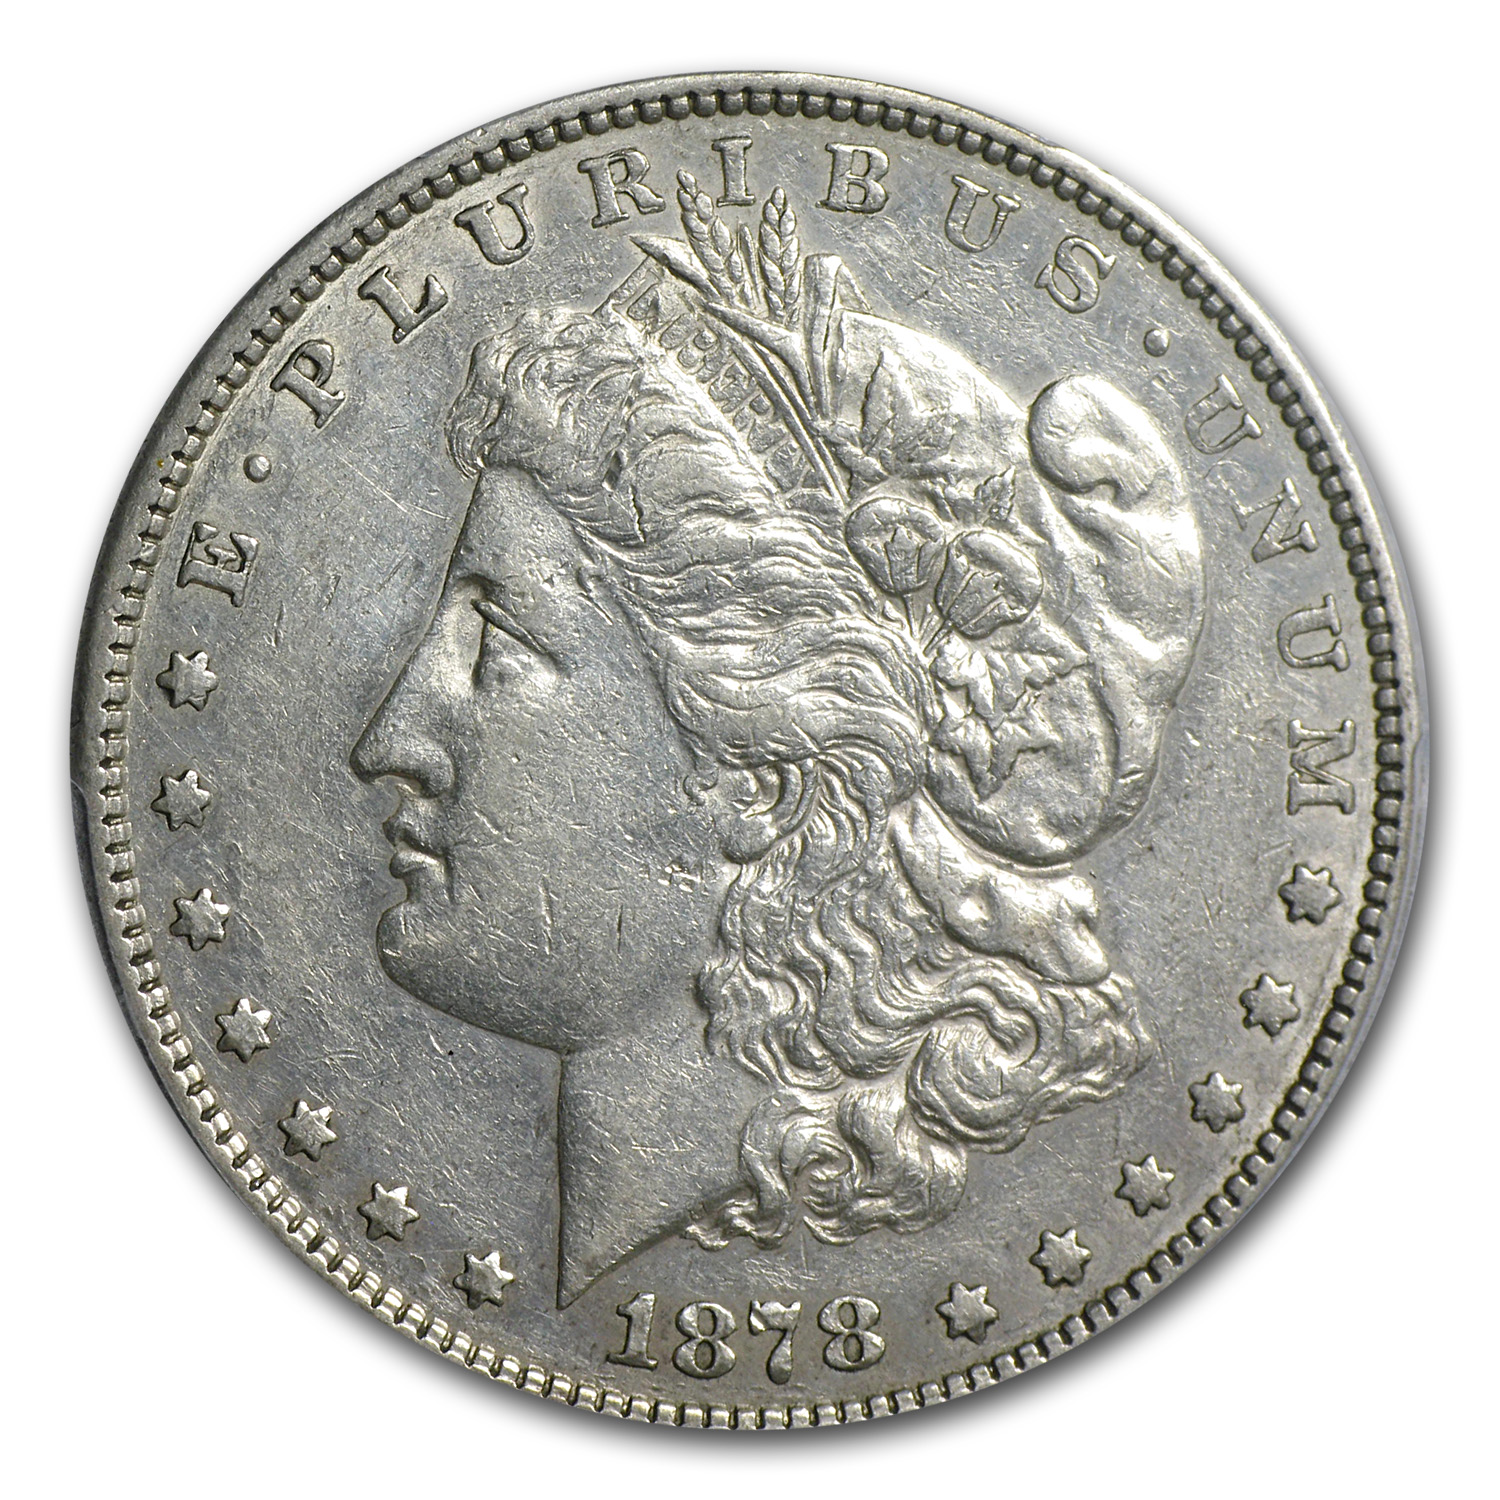 1878-S Morgan Dollar XF-45 PCGS (VAM-22, Doubled RIB Hot-50)